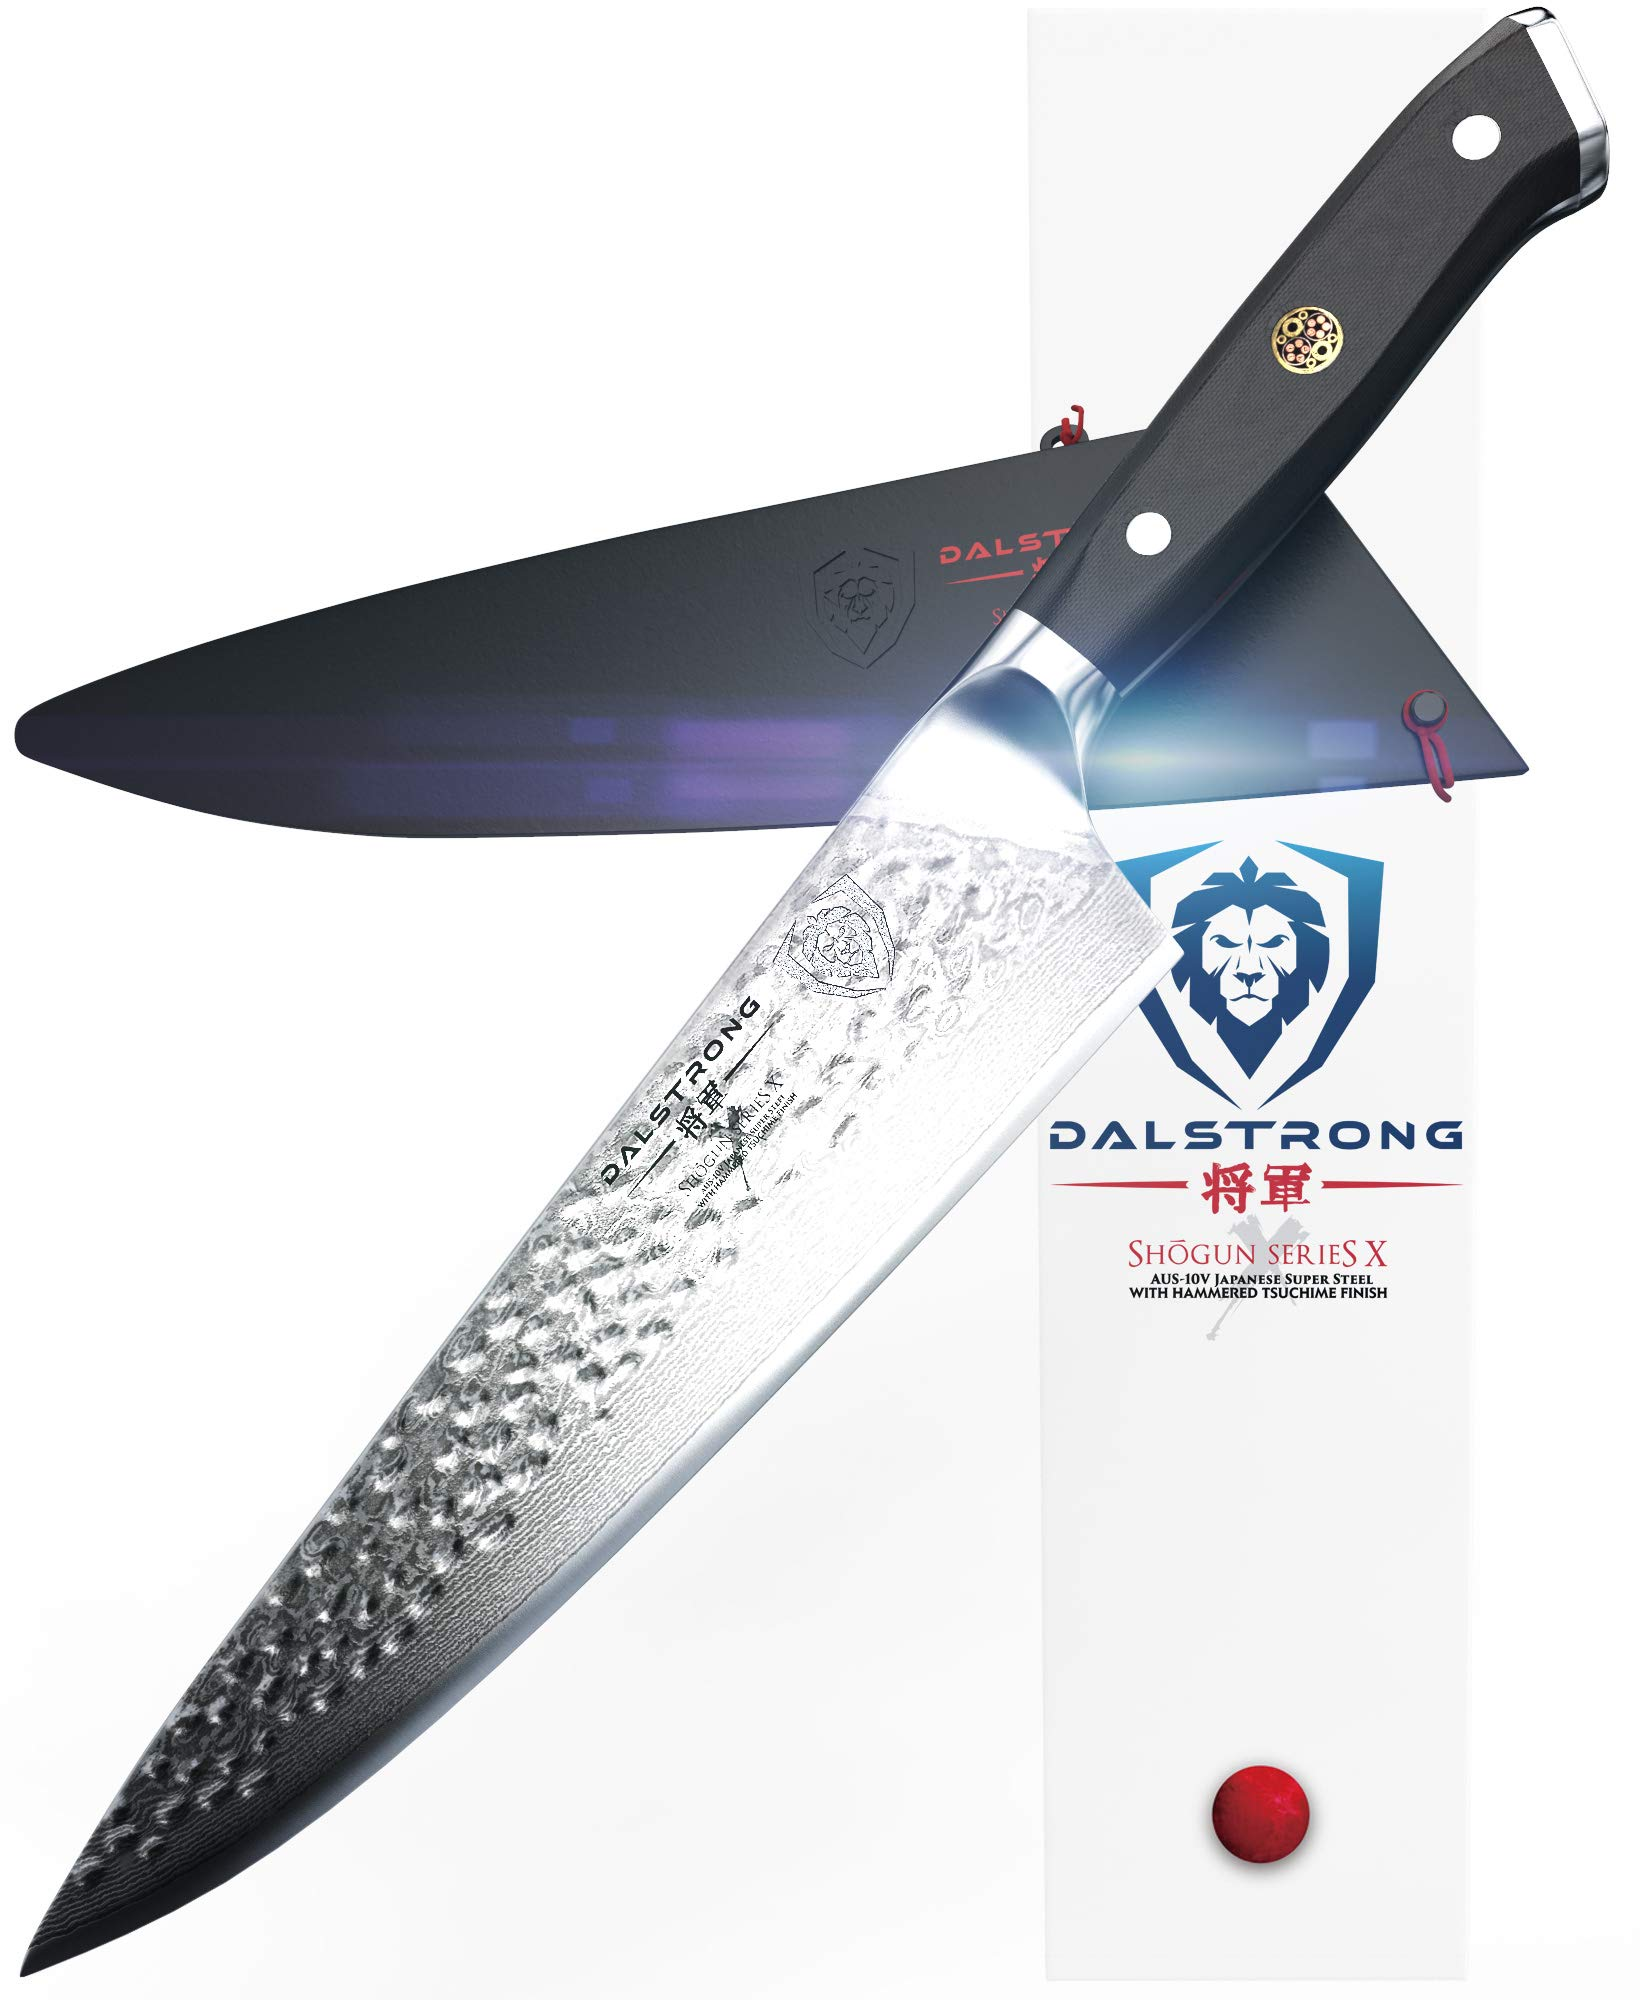 DALSTRONG Chef's Knife - 10.25'' - Large - Shogun Series X Professional Gyuto - Damascus - Japanese AUS-10V Super Steel (Vacuum Heat Treated) 67-Layers - Hammered Finish - Sheath by Dalstrong